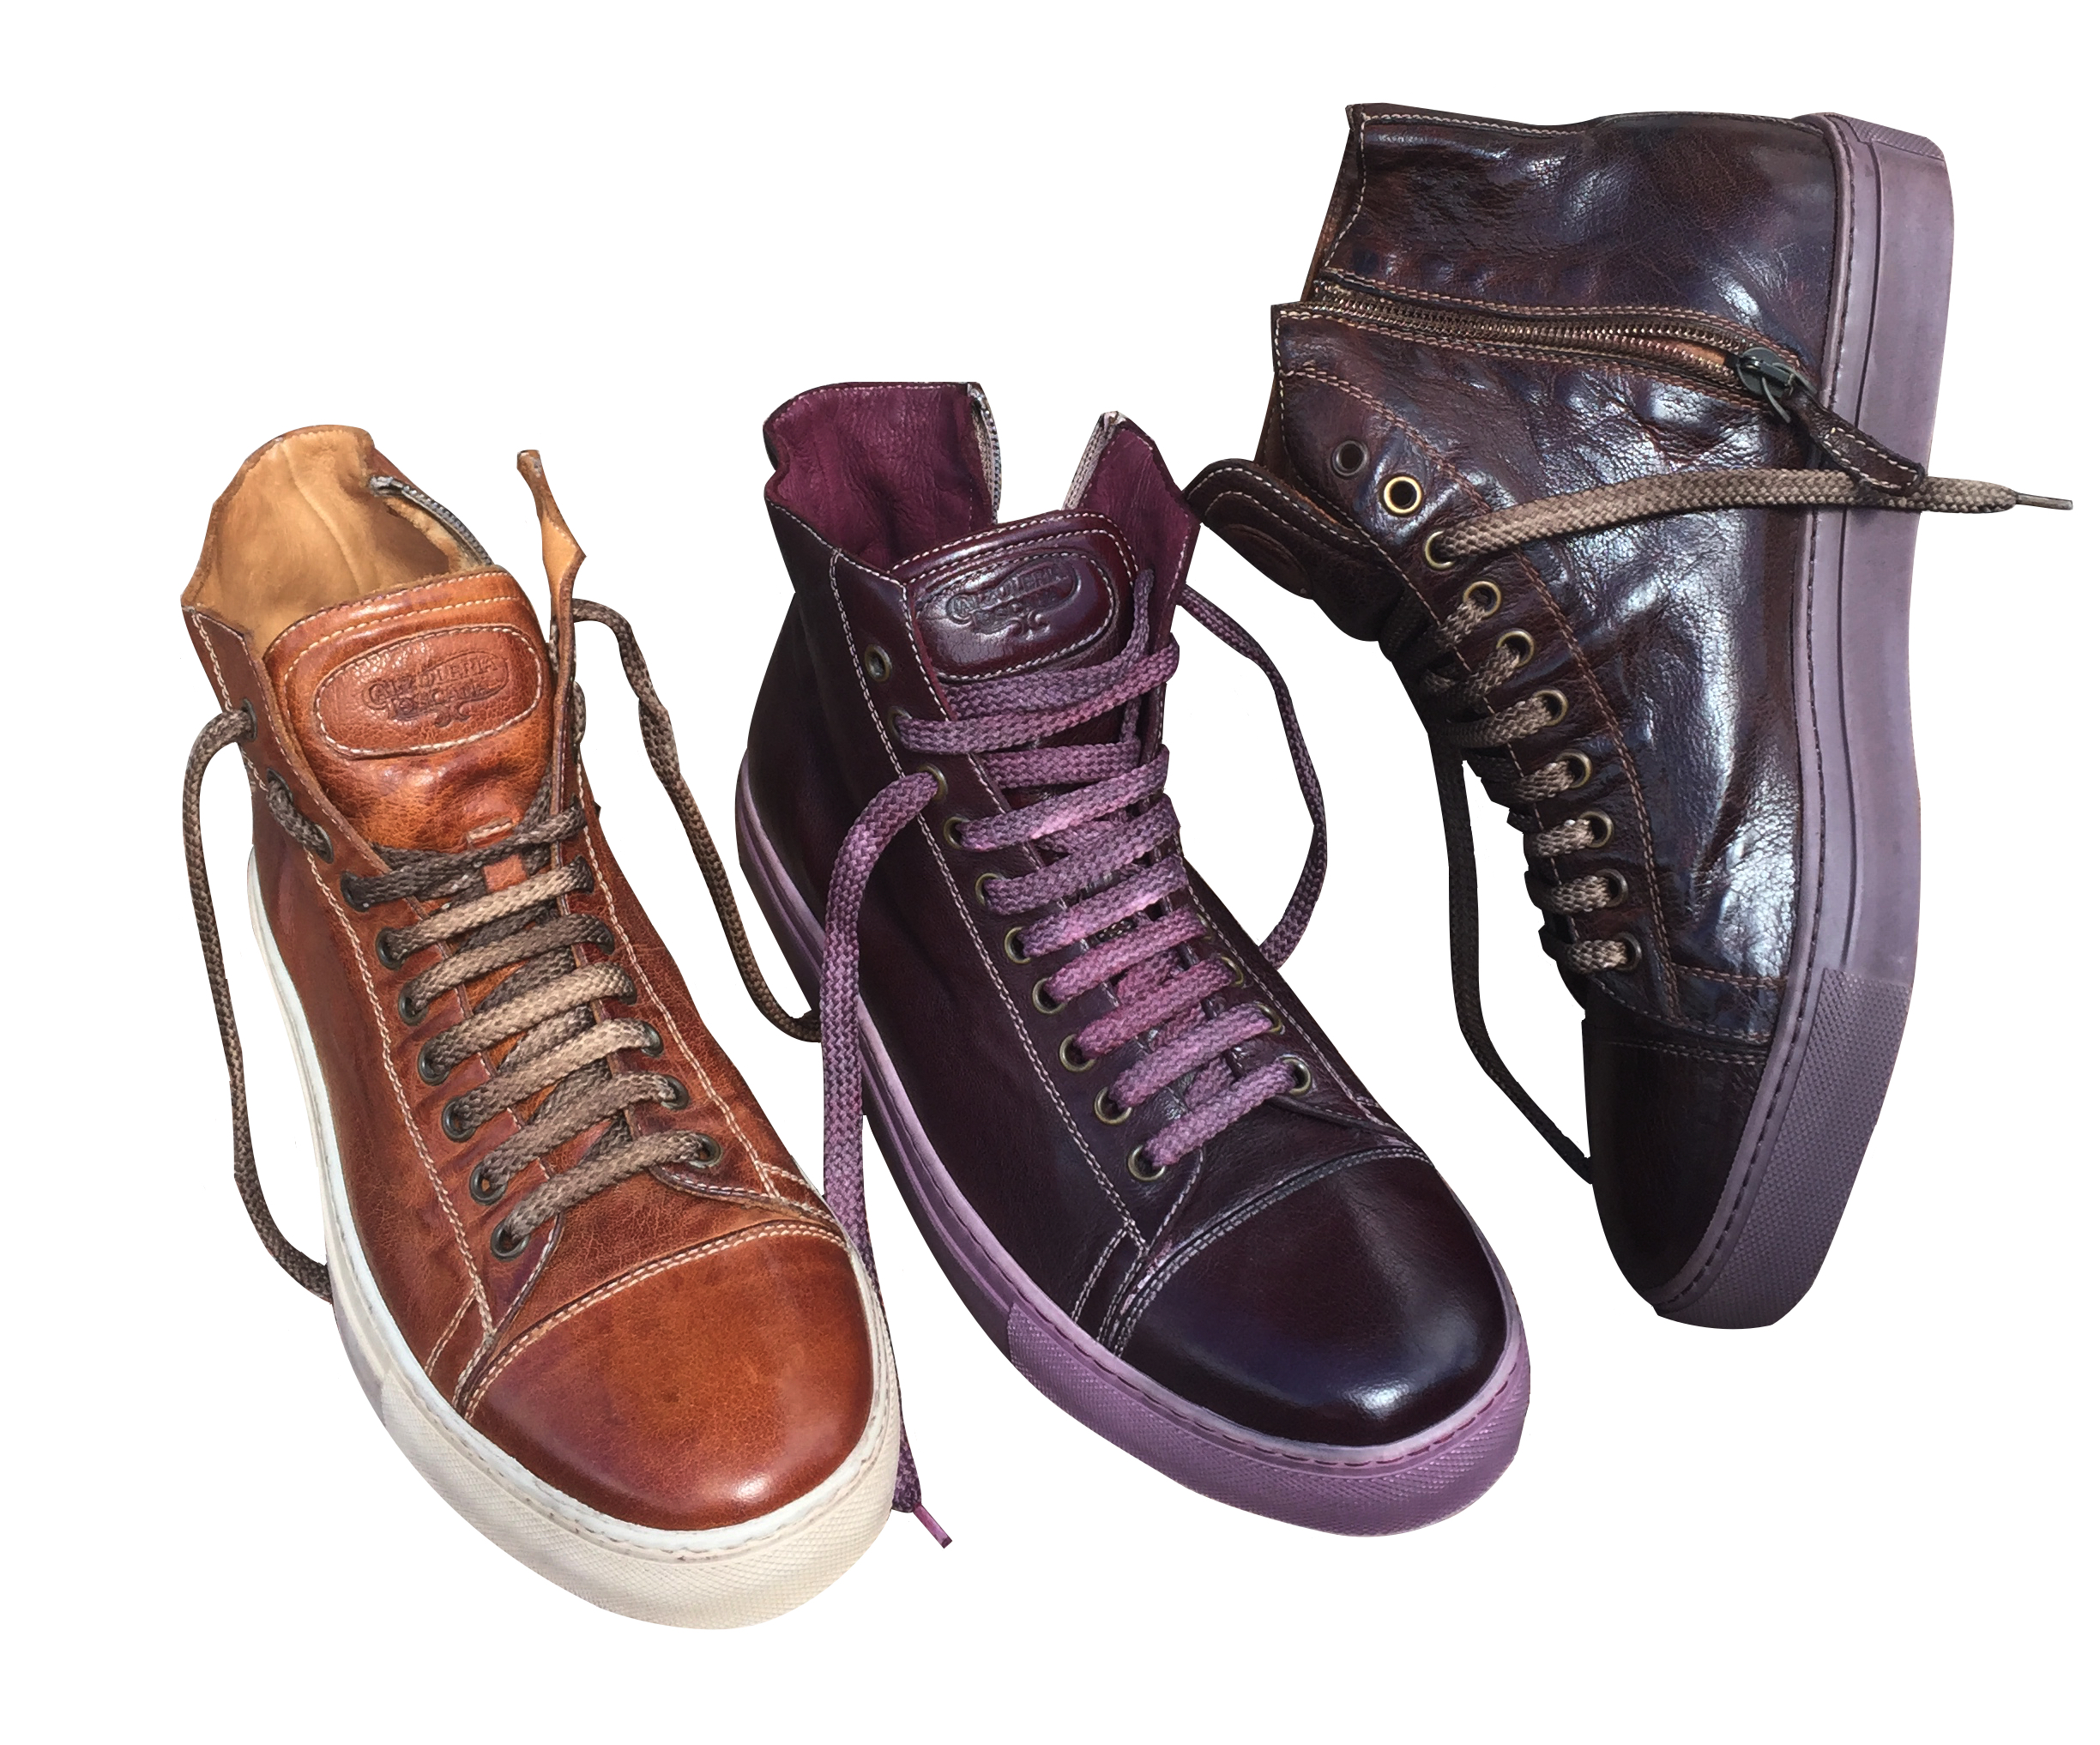 Style # 1242: Brick, Burgundy, Dark Brown  Dip-Dyed Buffalo Calf Leather High-Top  Sizes available :  7 to 14 US, including half sizes; 15 to 18 US, full sizes only